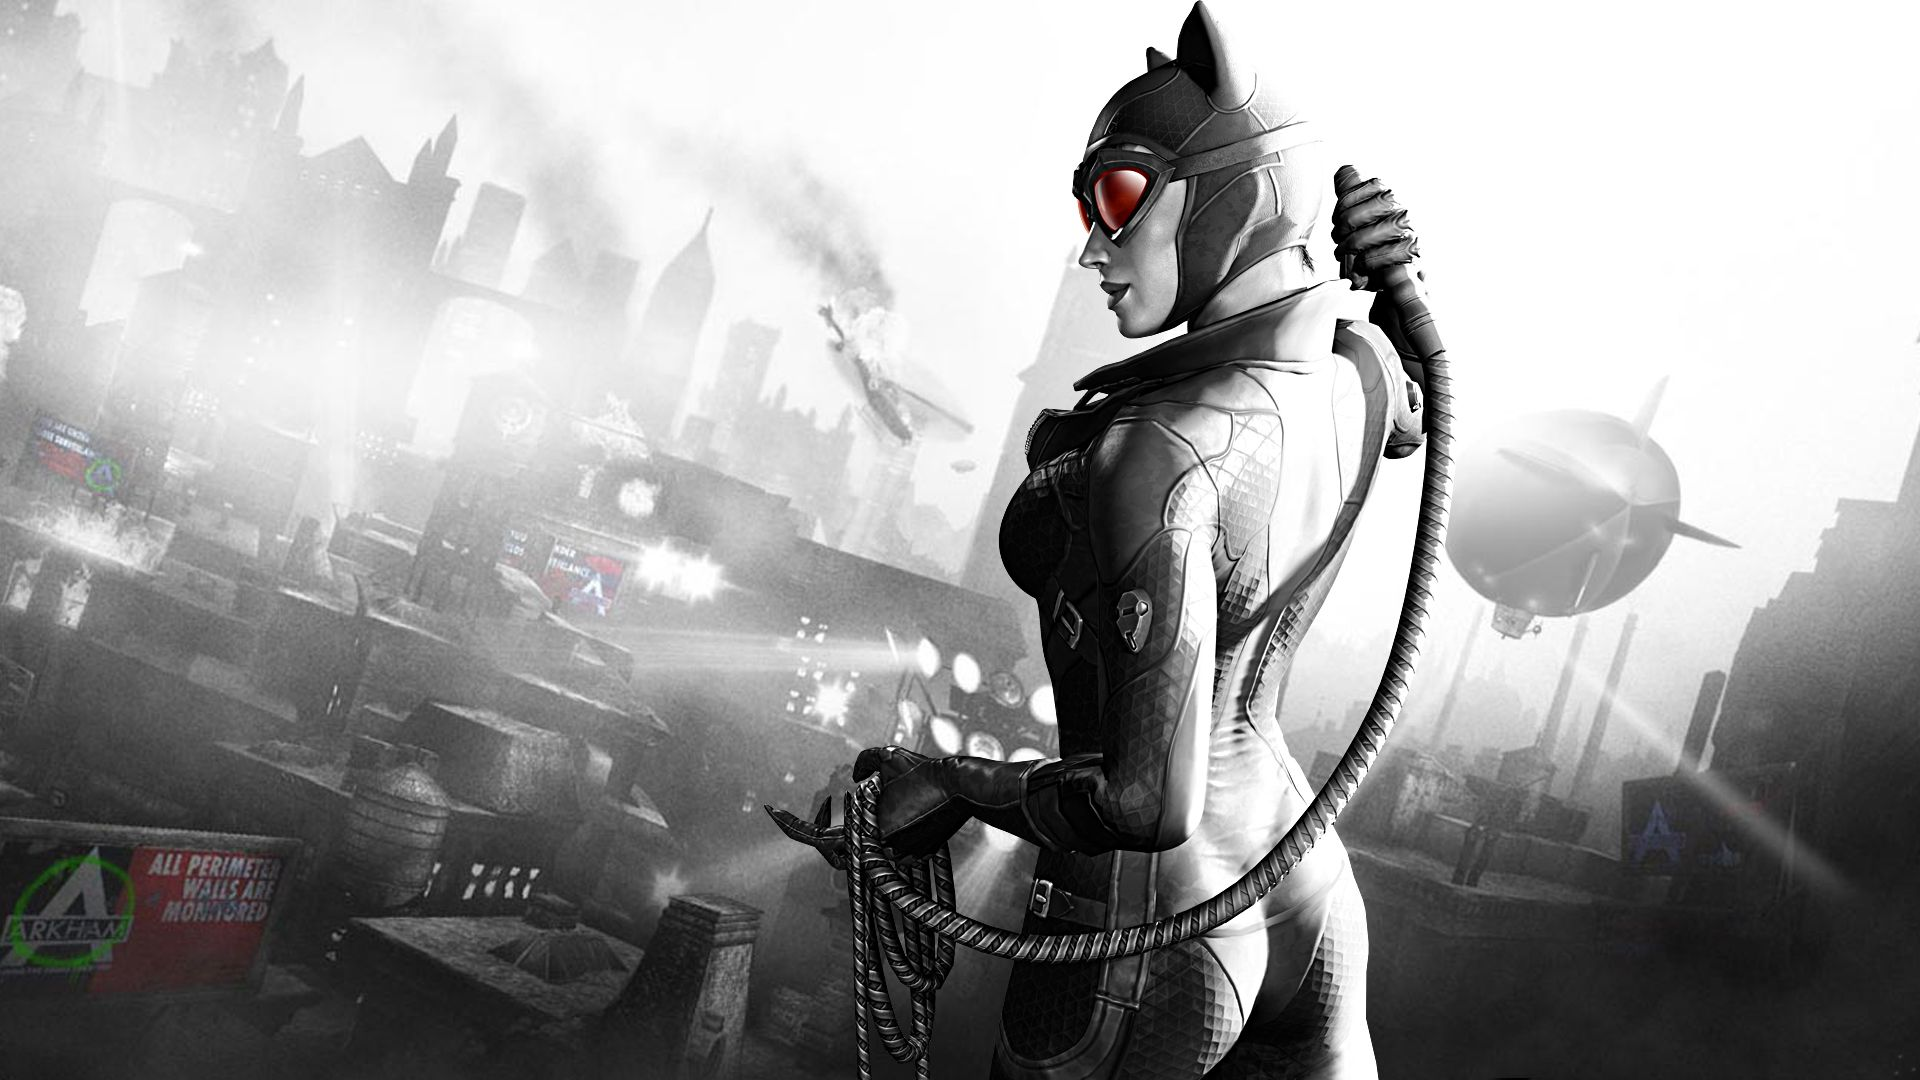 Get Batman Arkham City And All Dlc For One Low Price With The Release Of